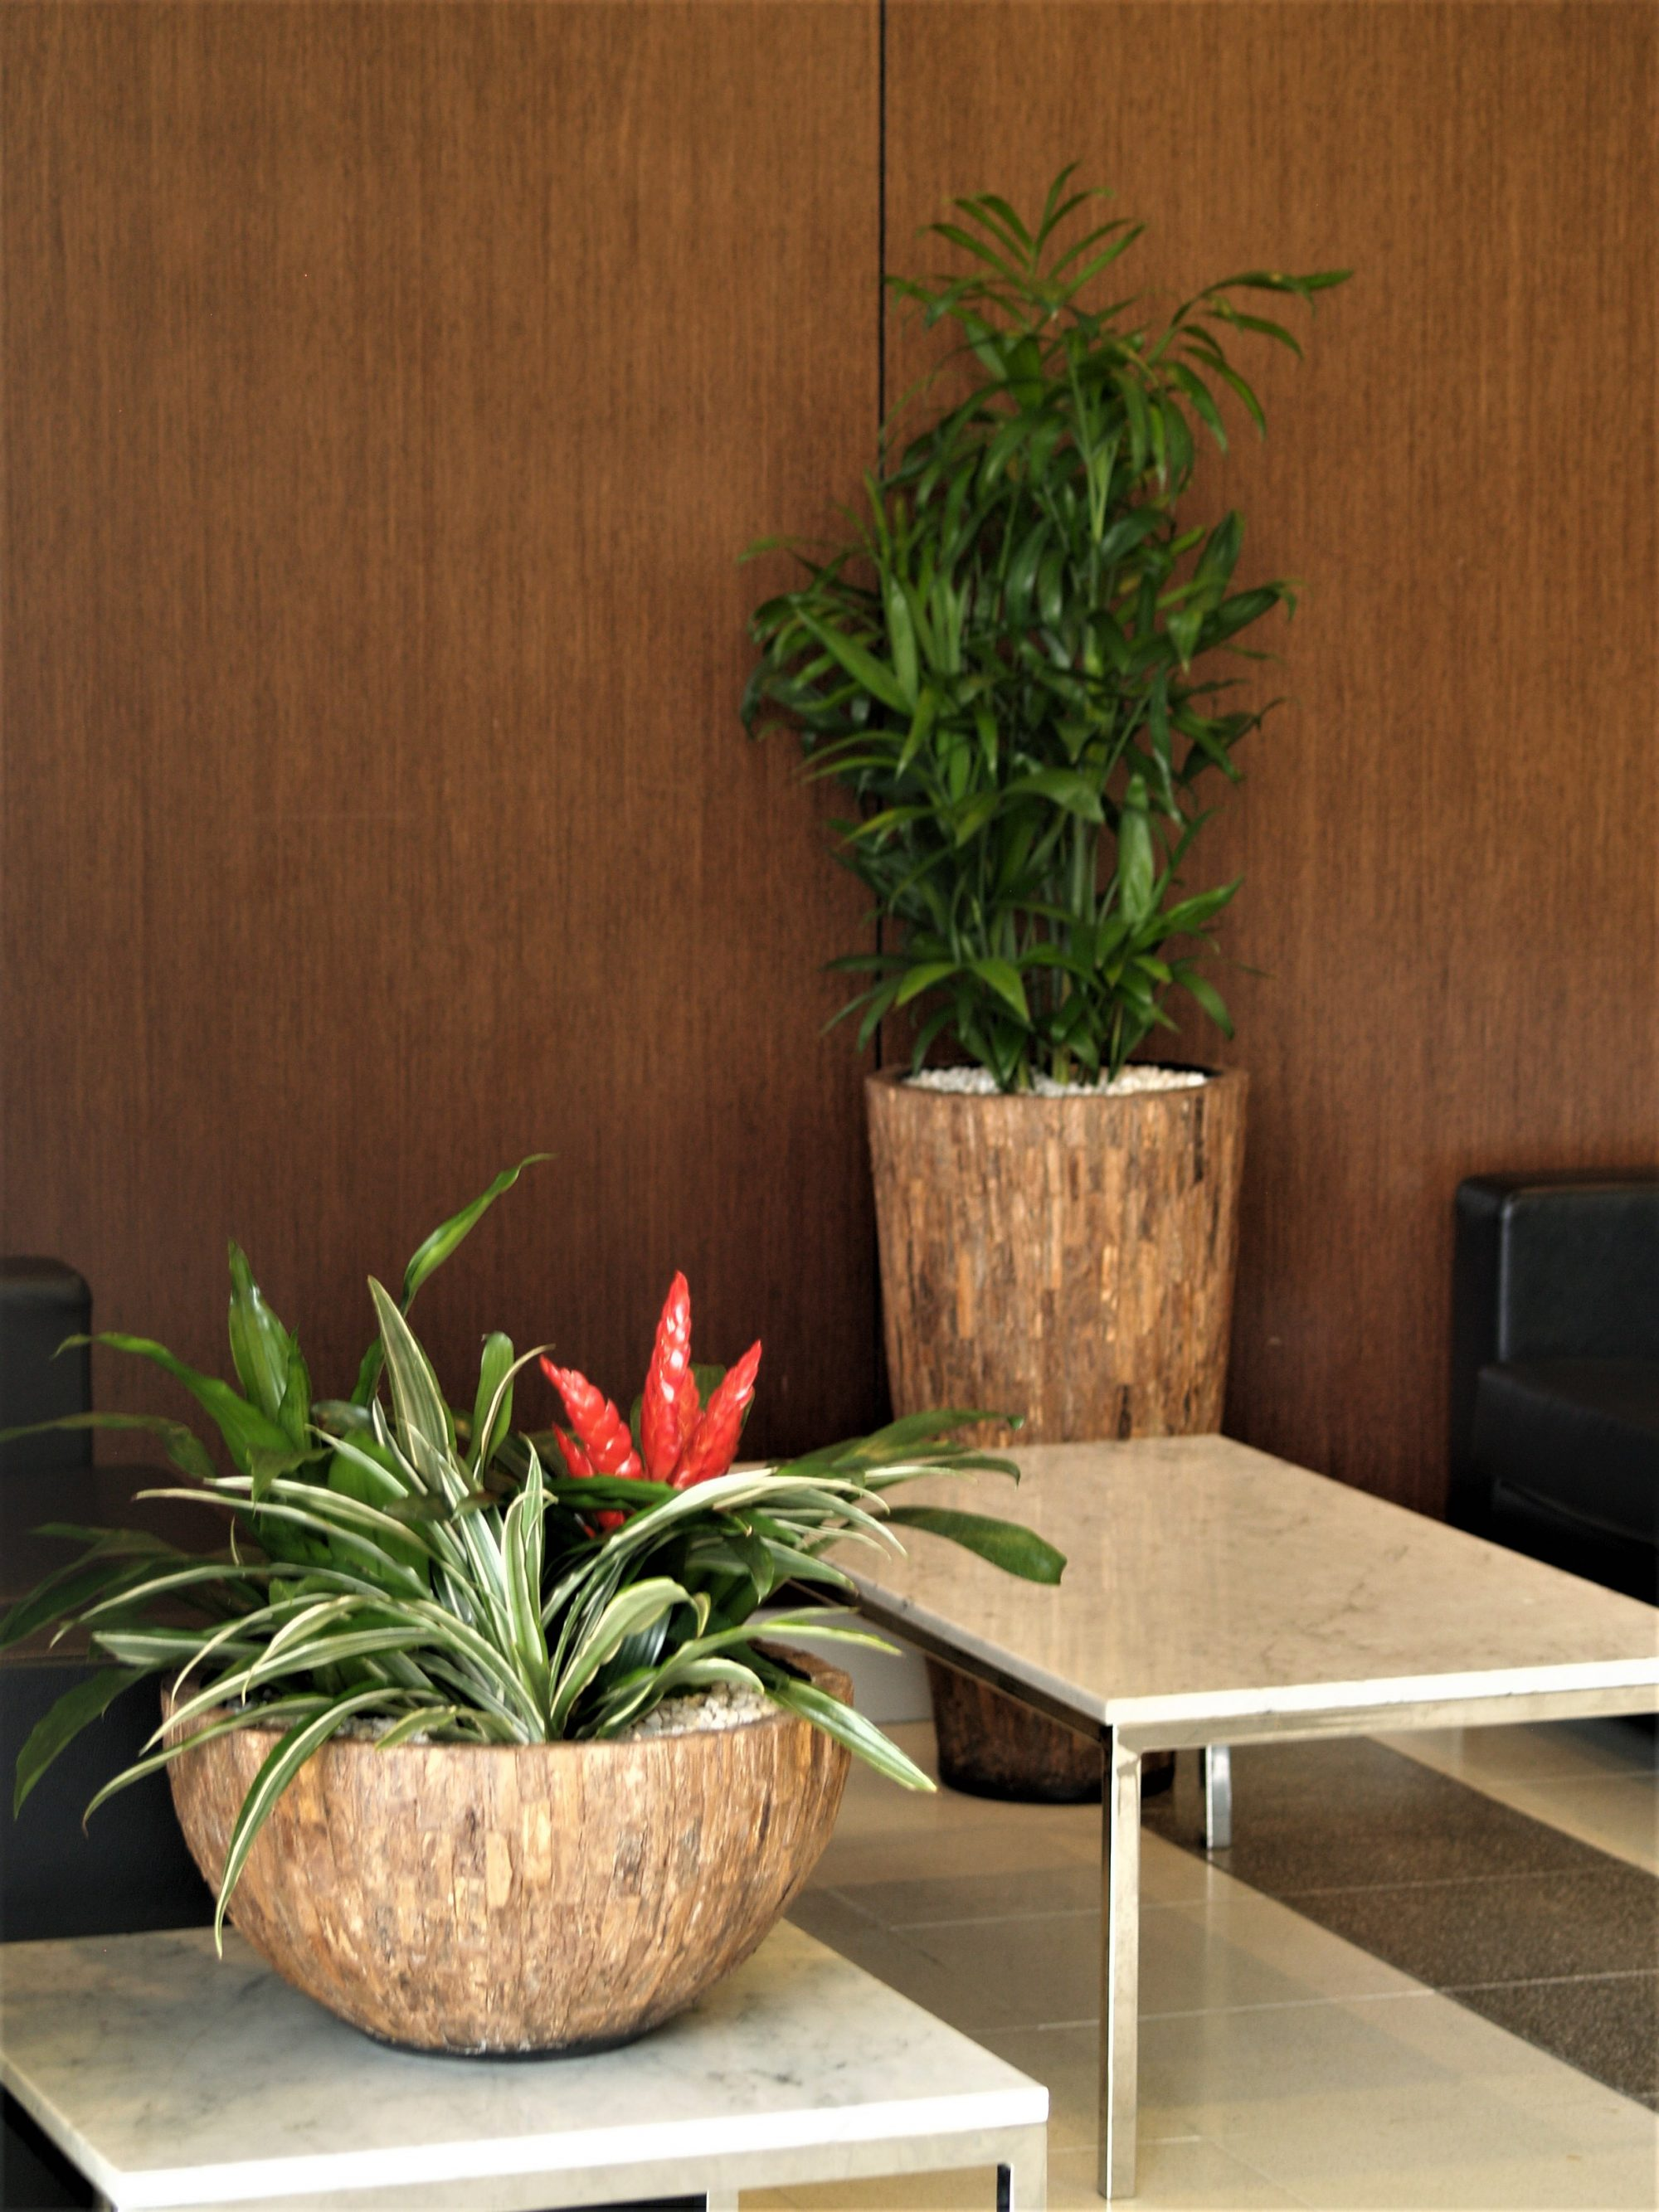 indoor plant hire, office plant hire, green design indoor plant hire, office planters, office plants, indoor planters, modern planters